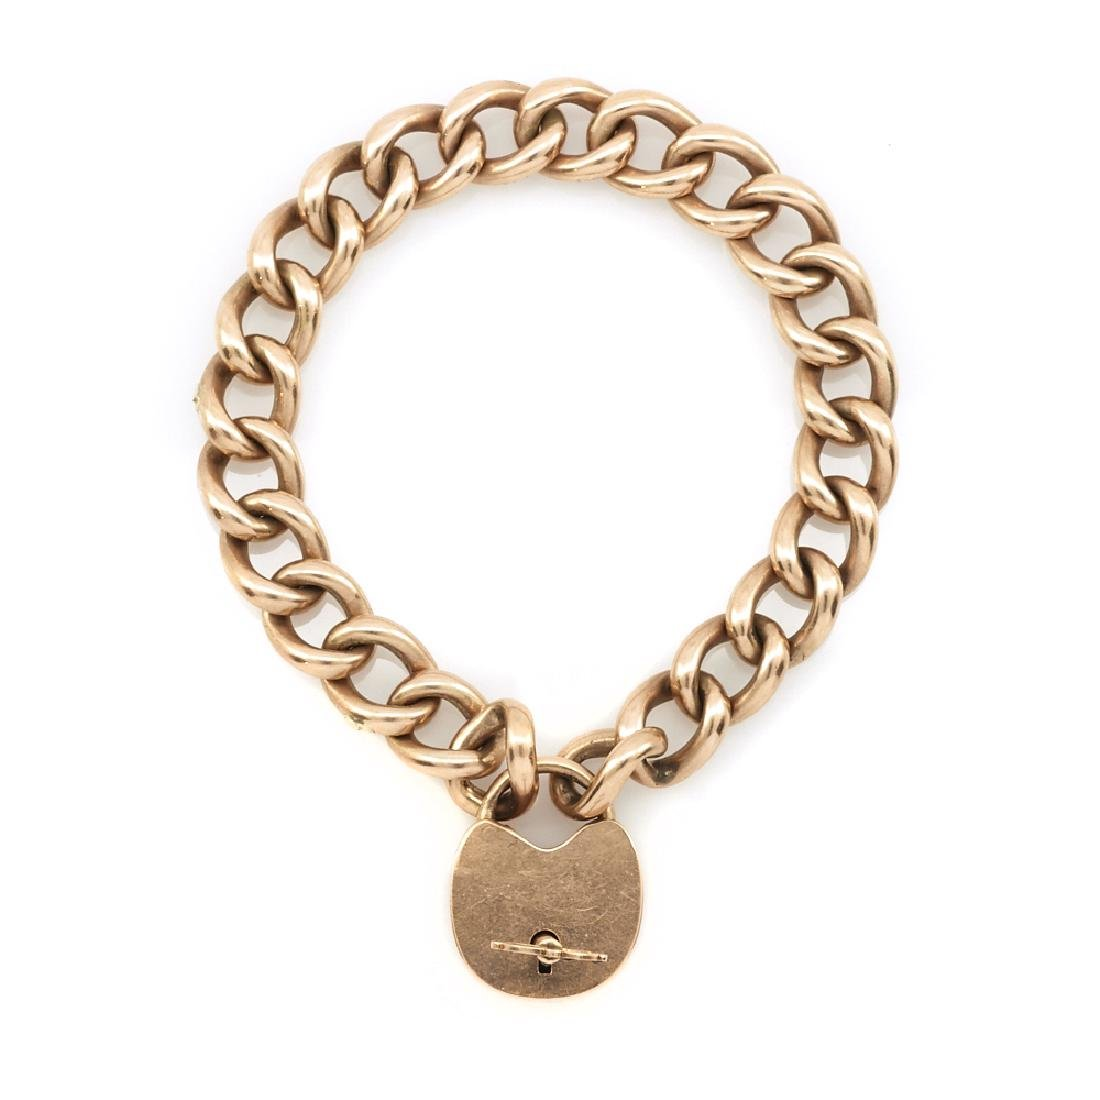 14k Rose gold heart lock bracelet, 28.2g.